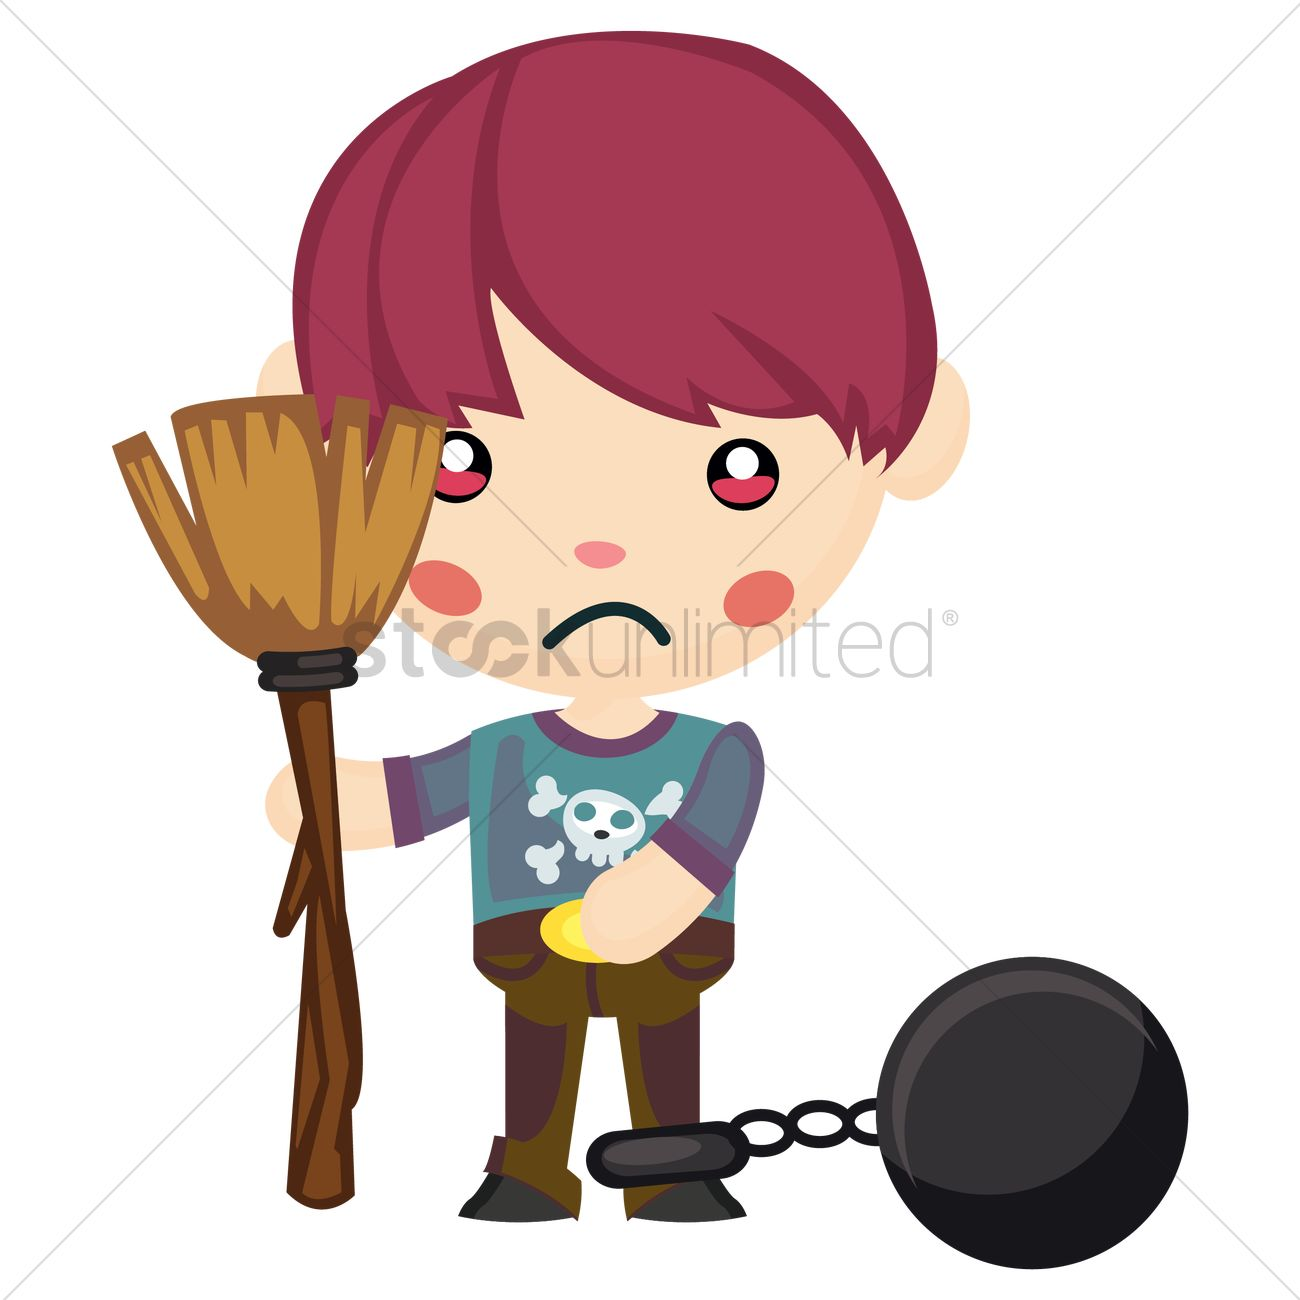 1300x1300 Cute Boy In Ball And Chain With Broom In Hand Vector Image